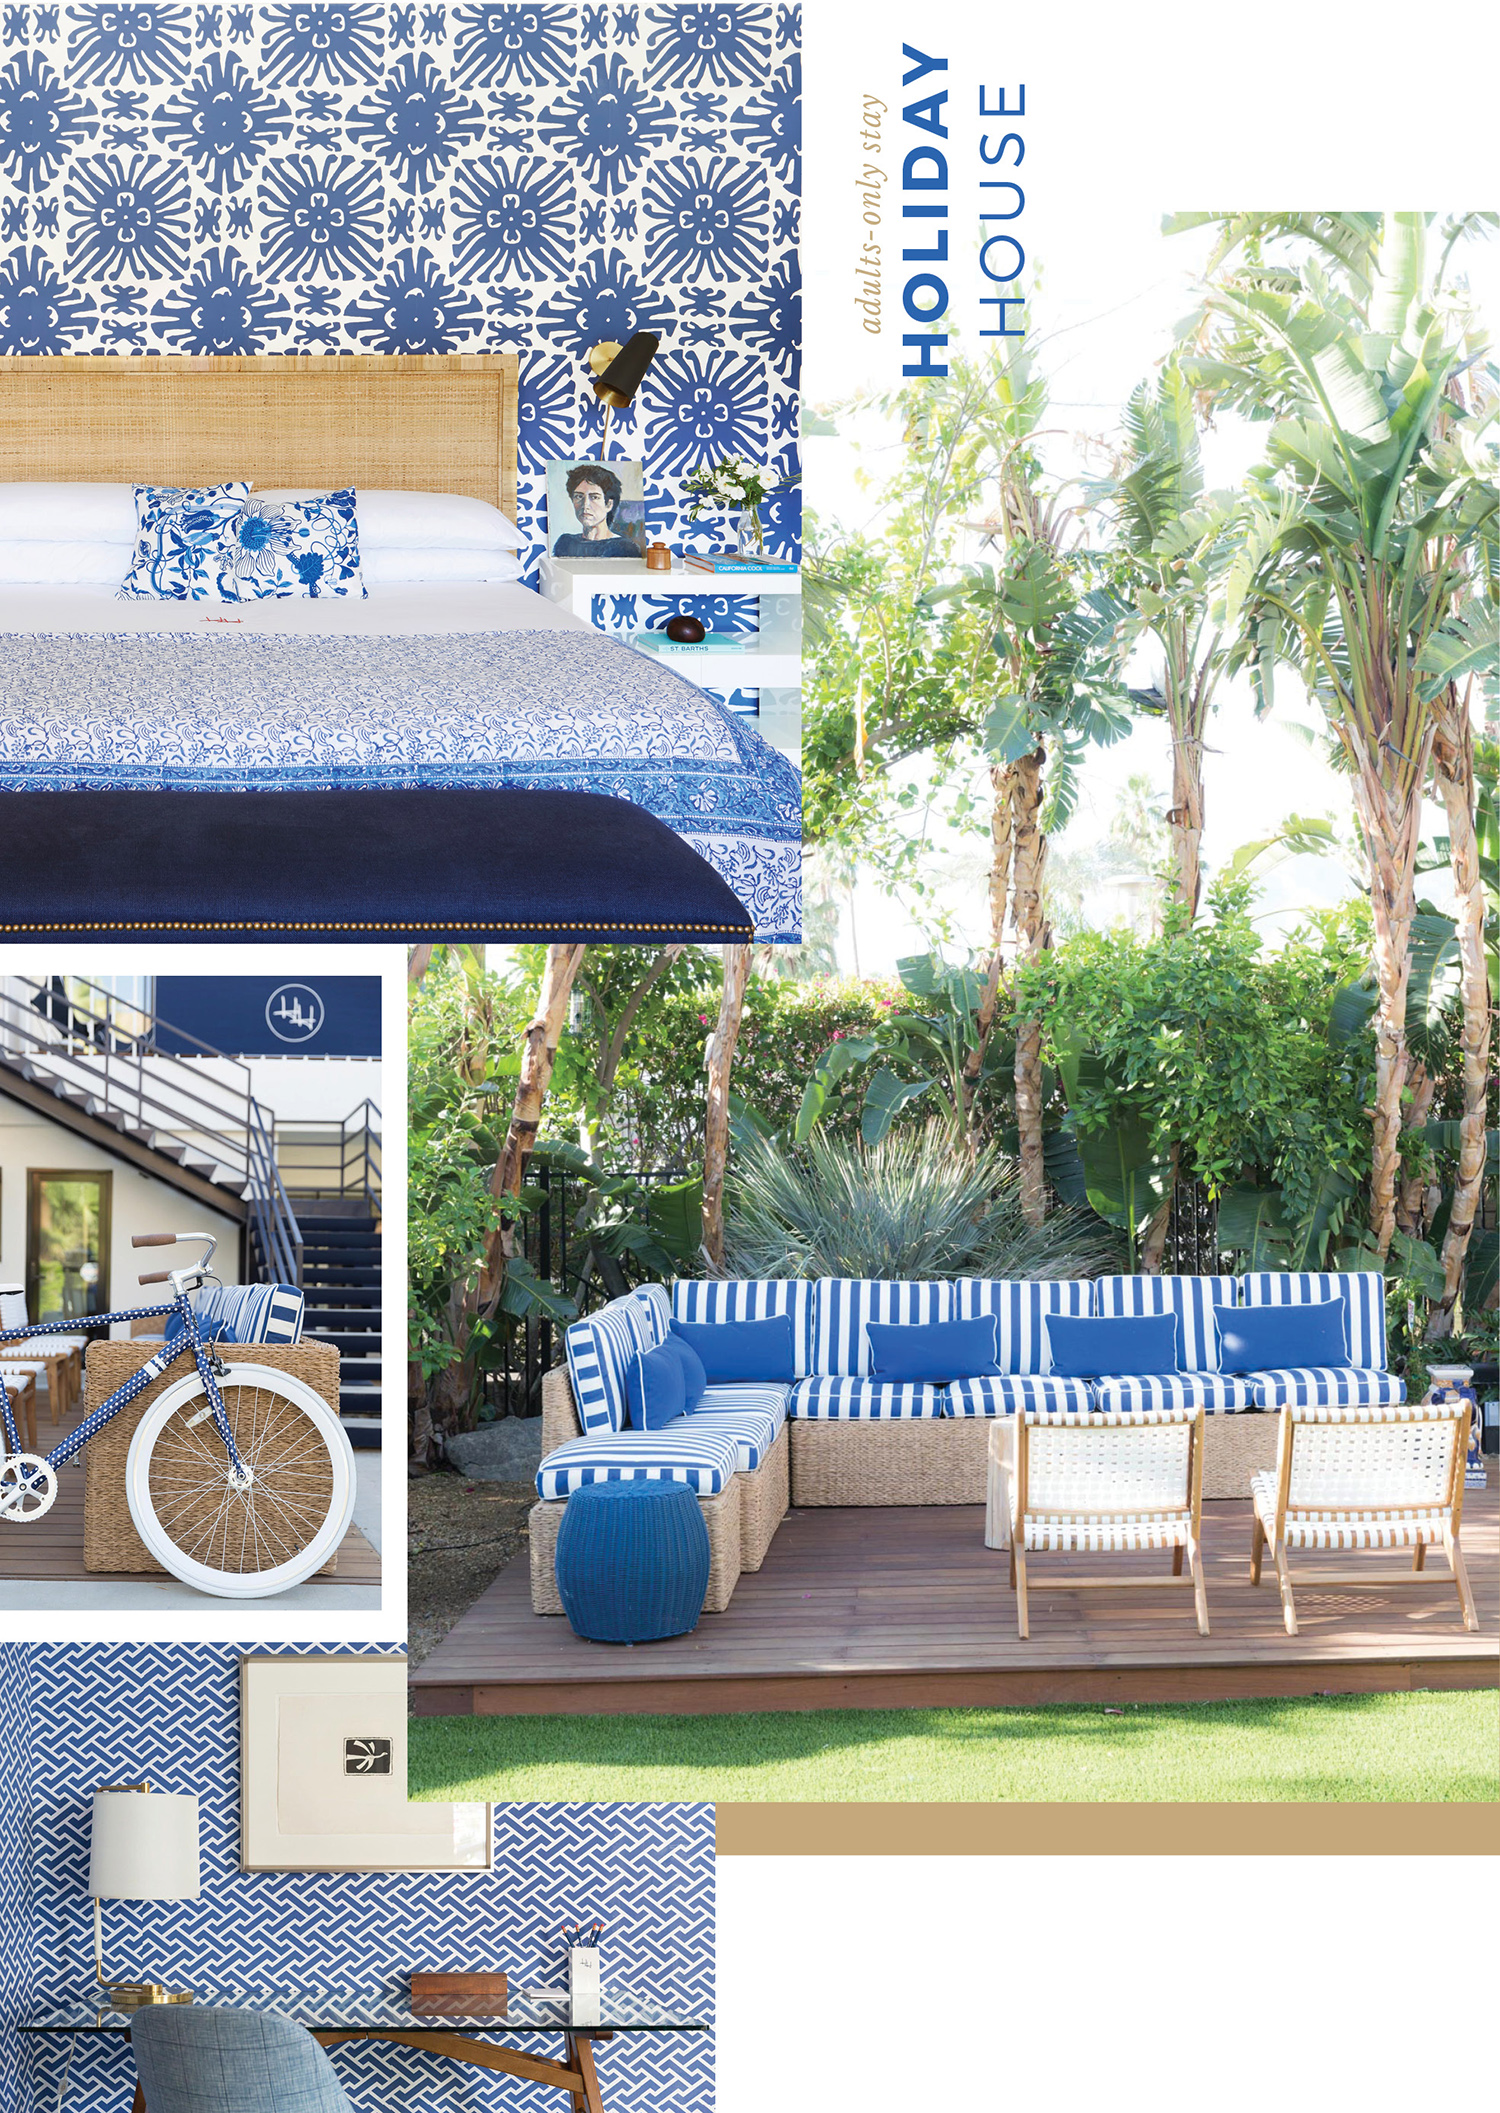 california_holiday_house_palm_springs_adults_only_resort_boutique.jpg